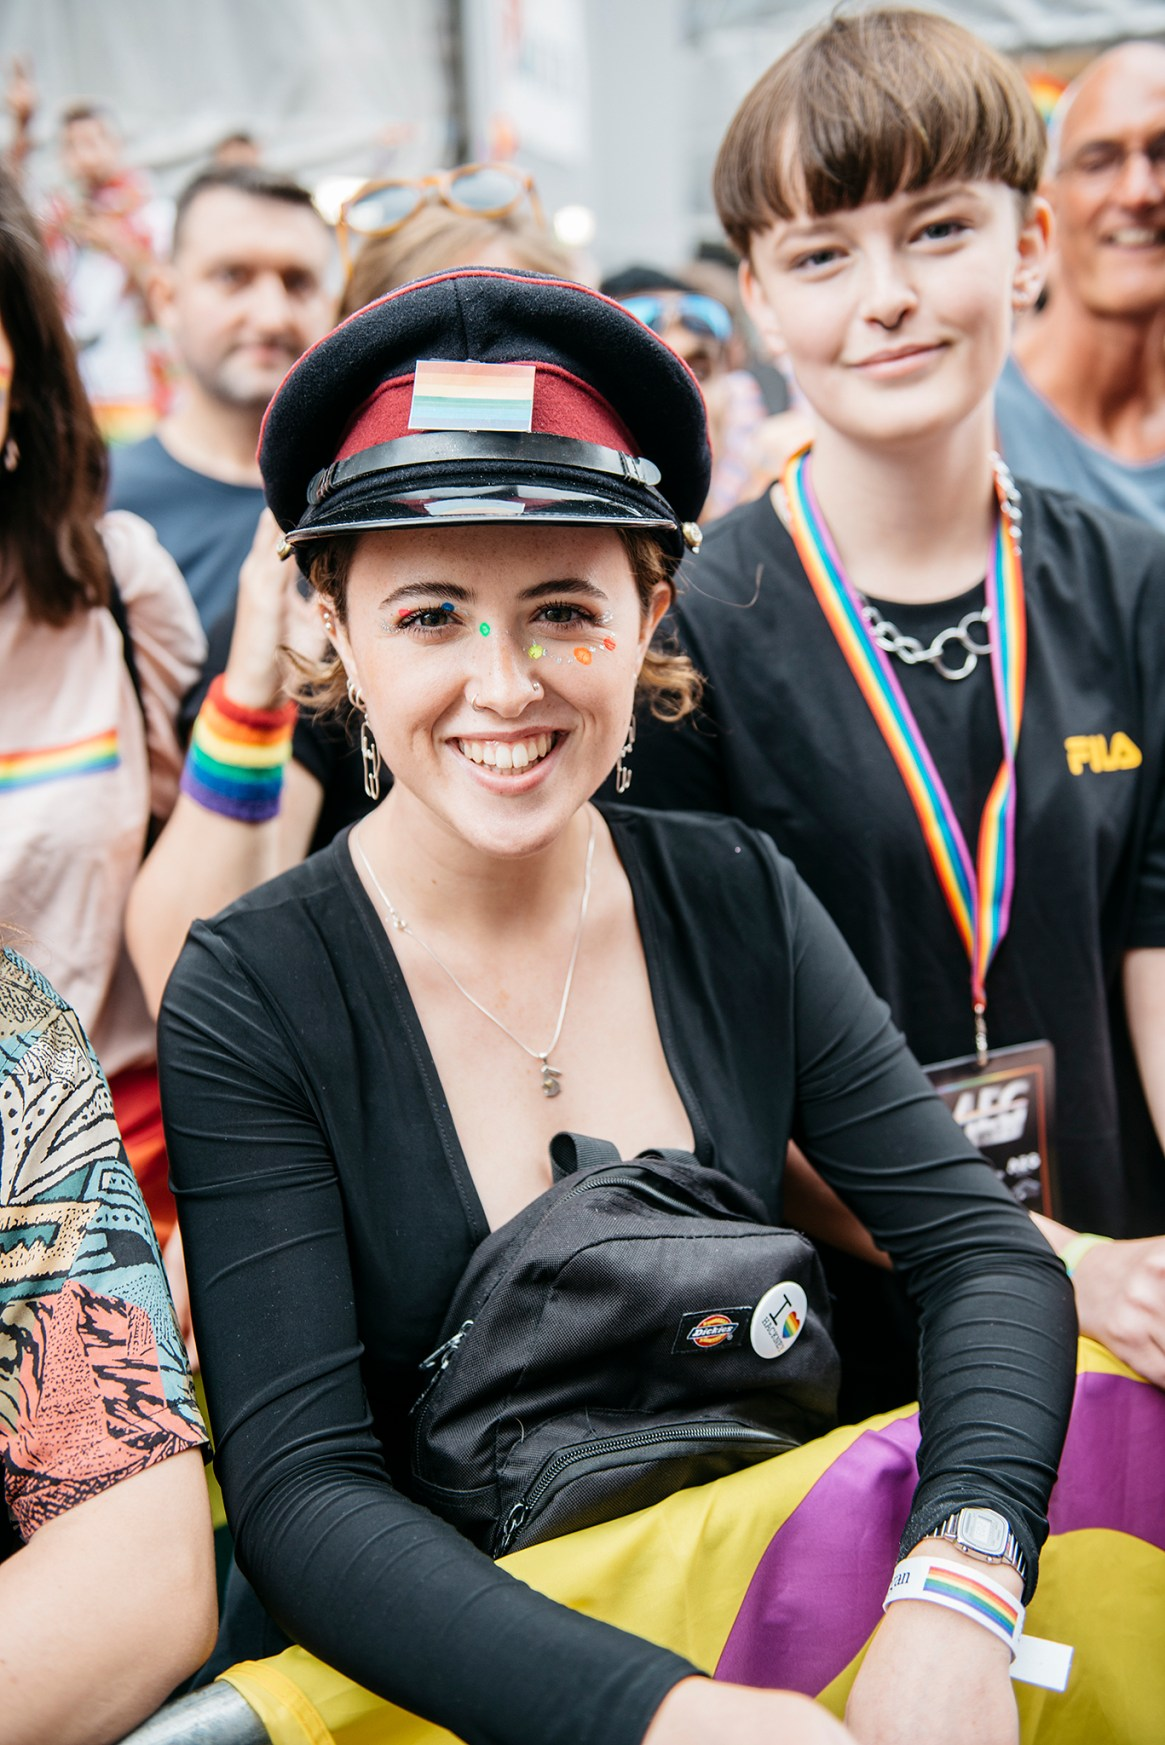 A woman wearing a black top and police style cap poses and smiles while watching the passing Pride in London parade, 2019.